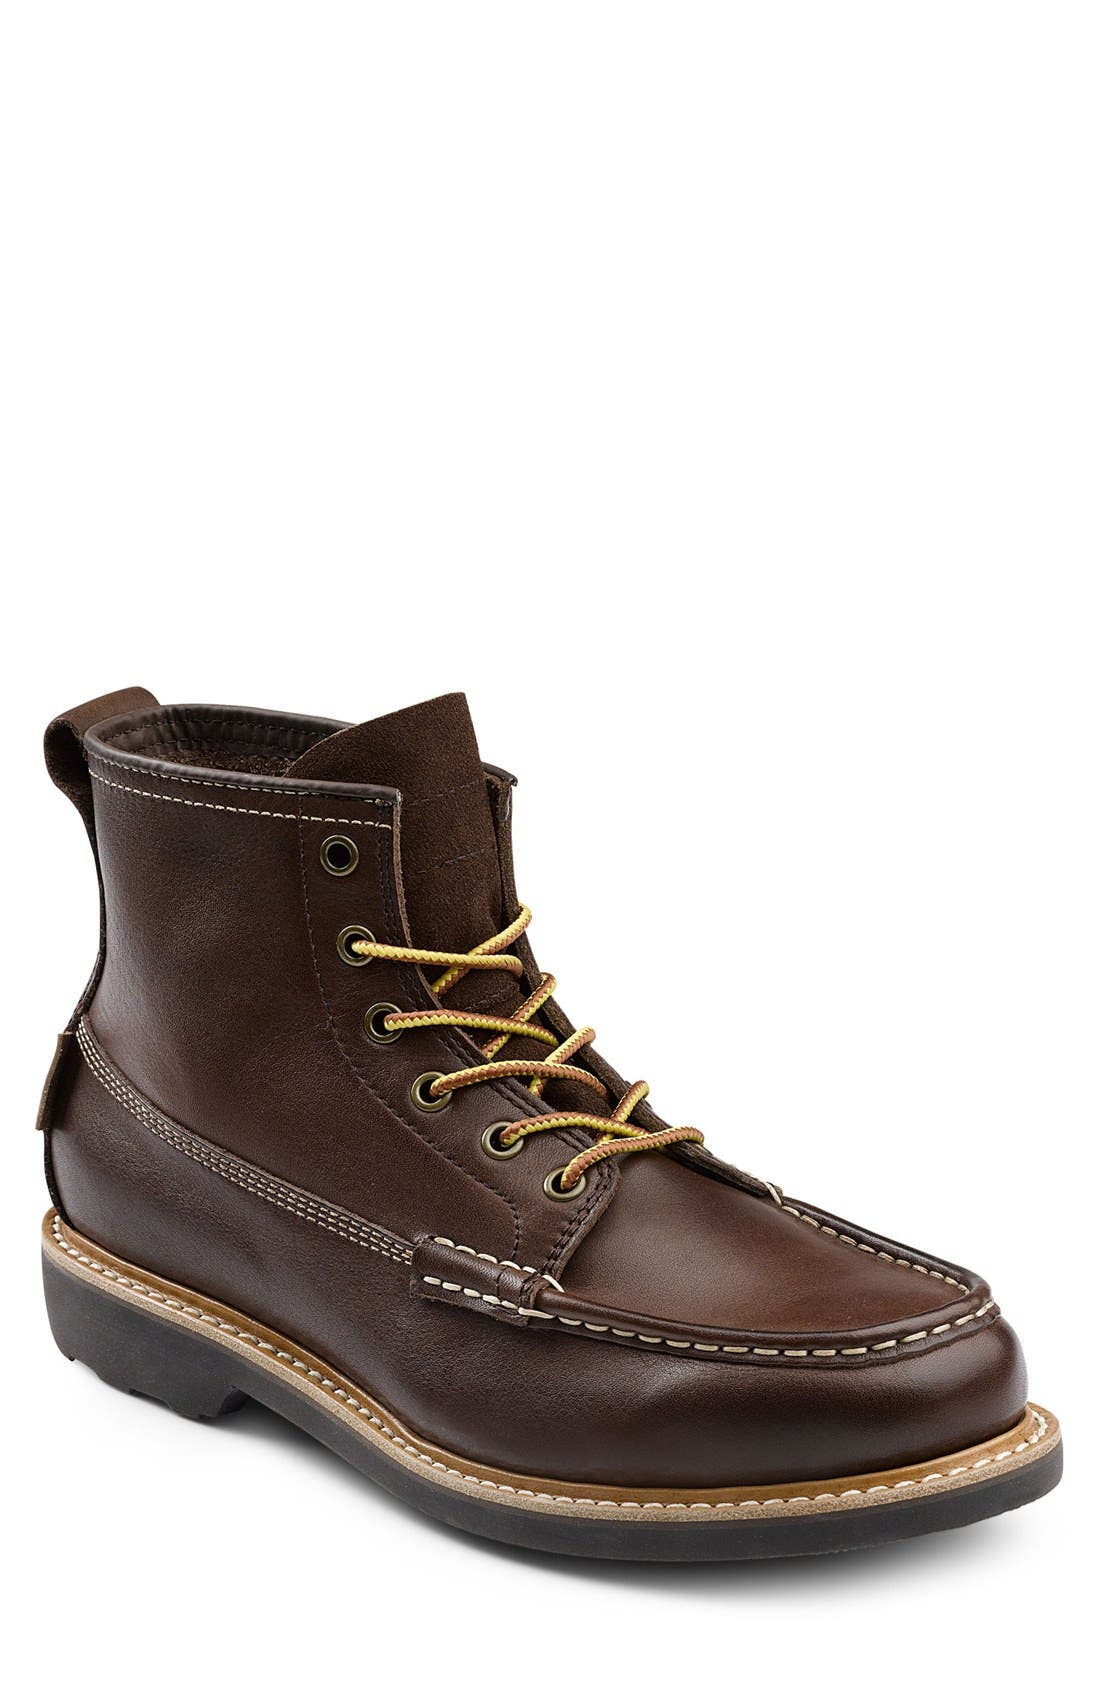 'Ashby' Moc Toe Boot,                             Main thumbnail 2, color,